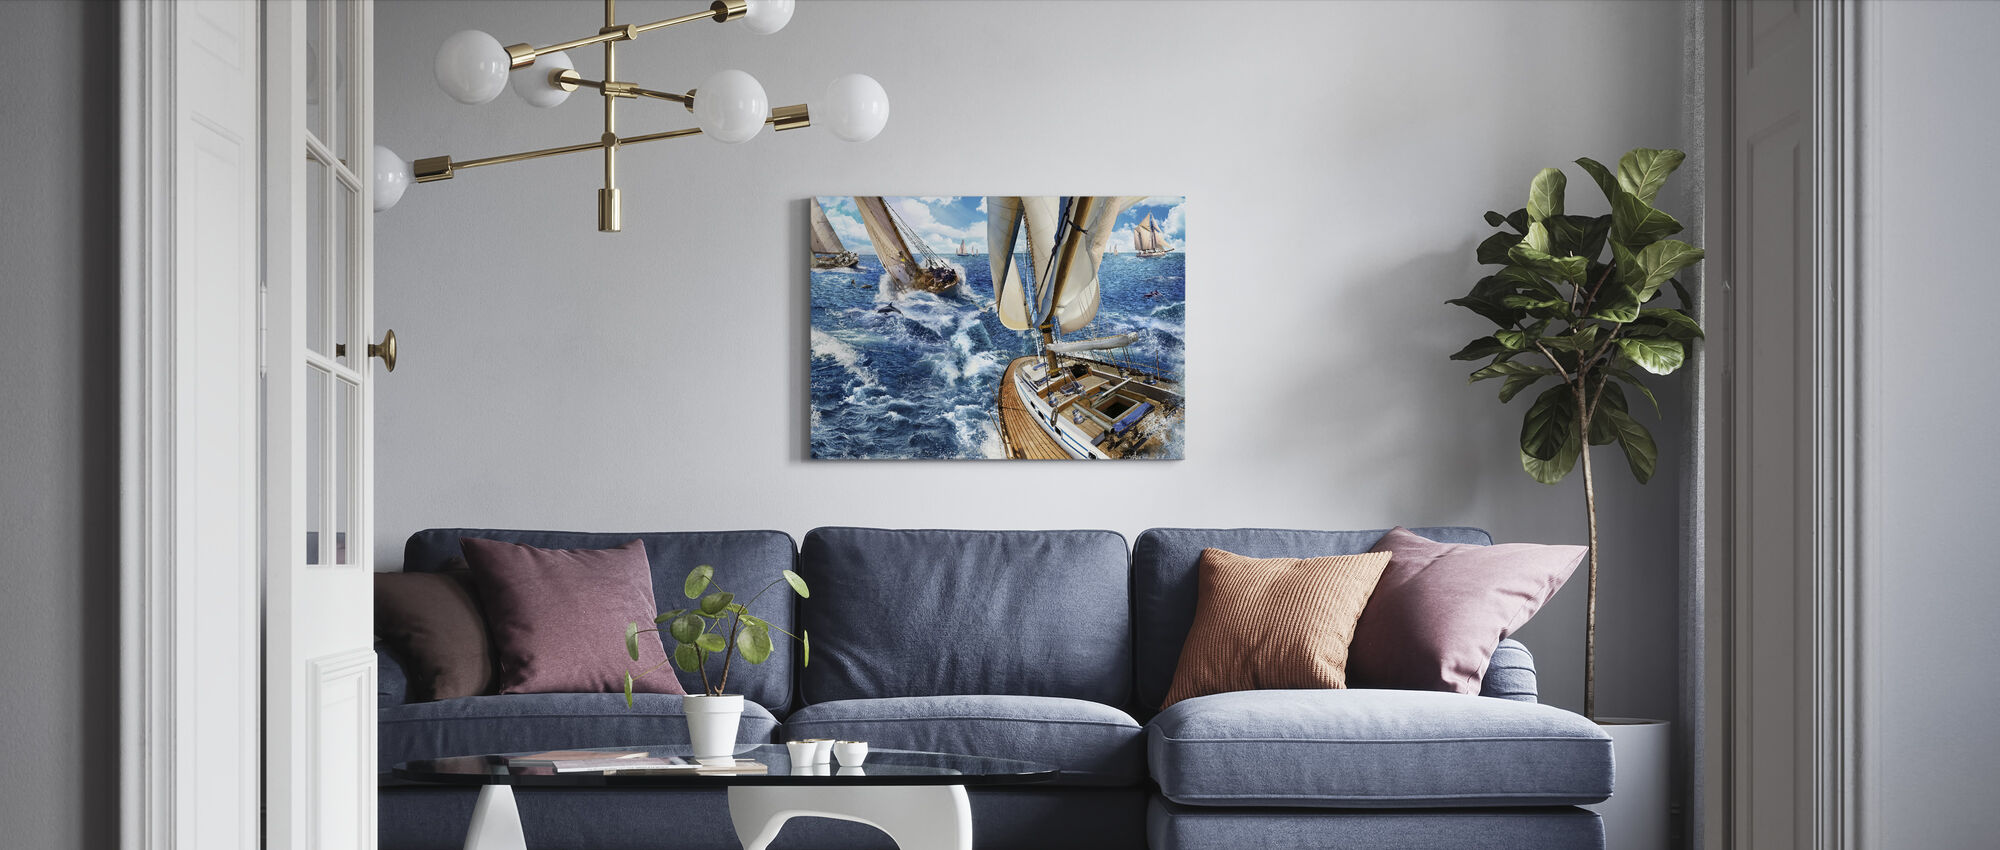 Sailing with Dolphins - Canvas print - Living Room